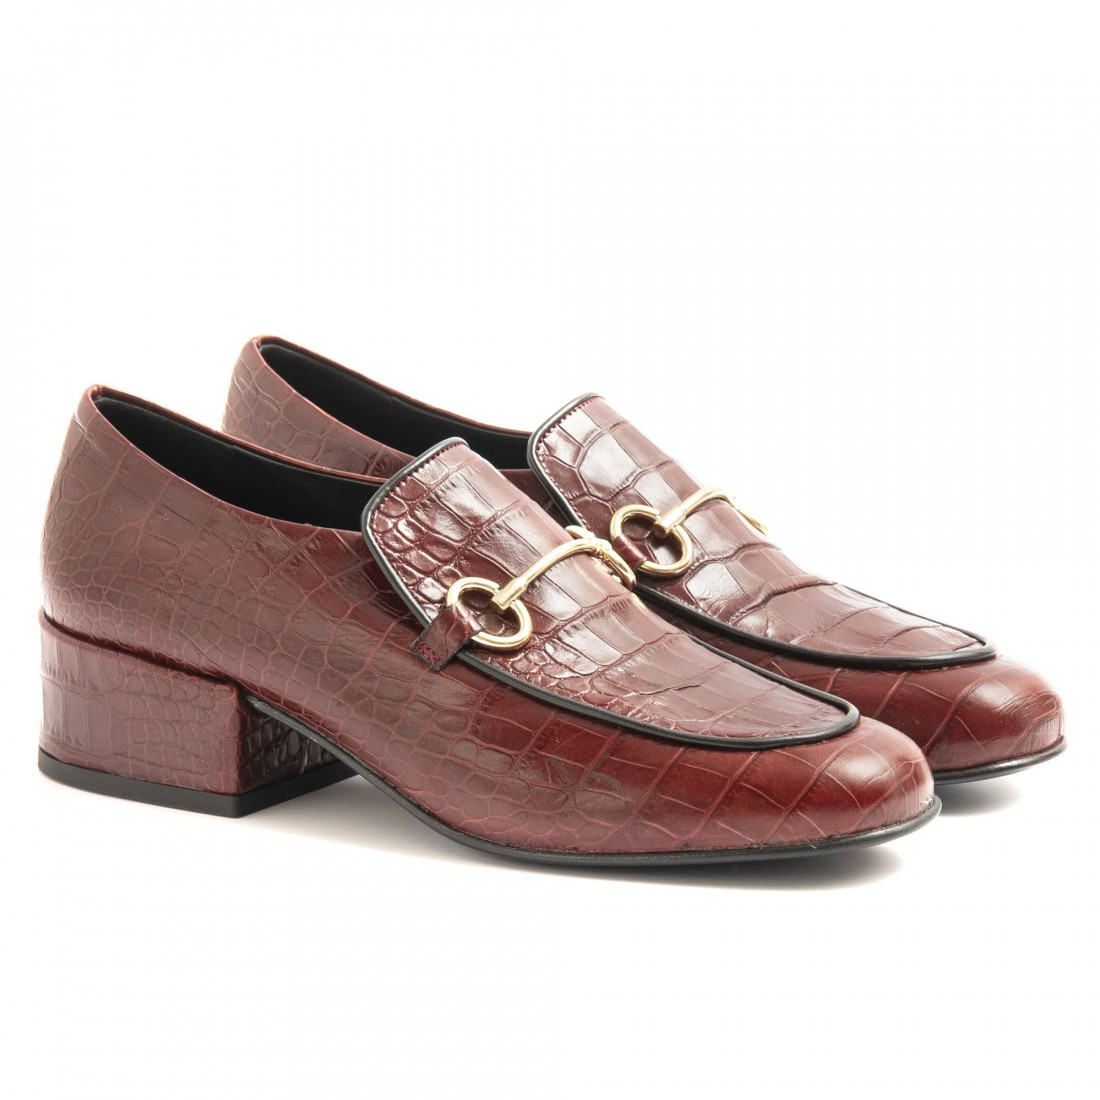 loafers woman fiorina  s313cocco bordeaux 6291